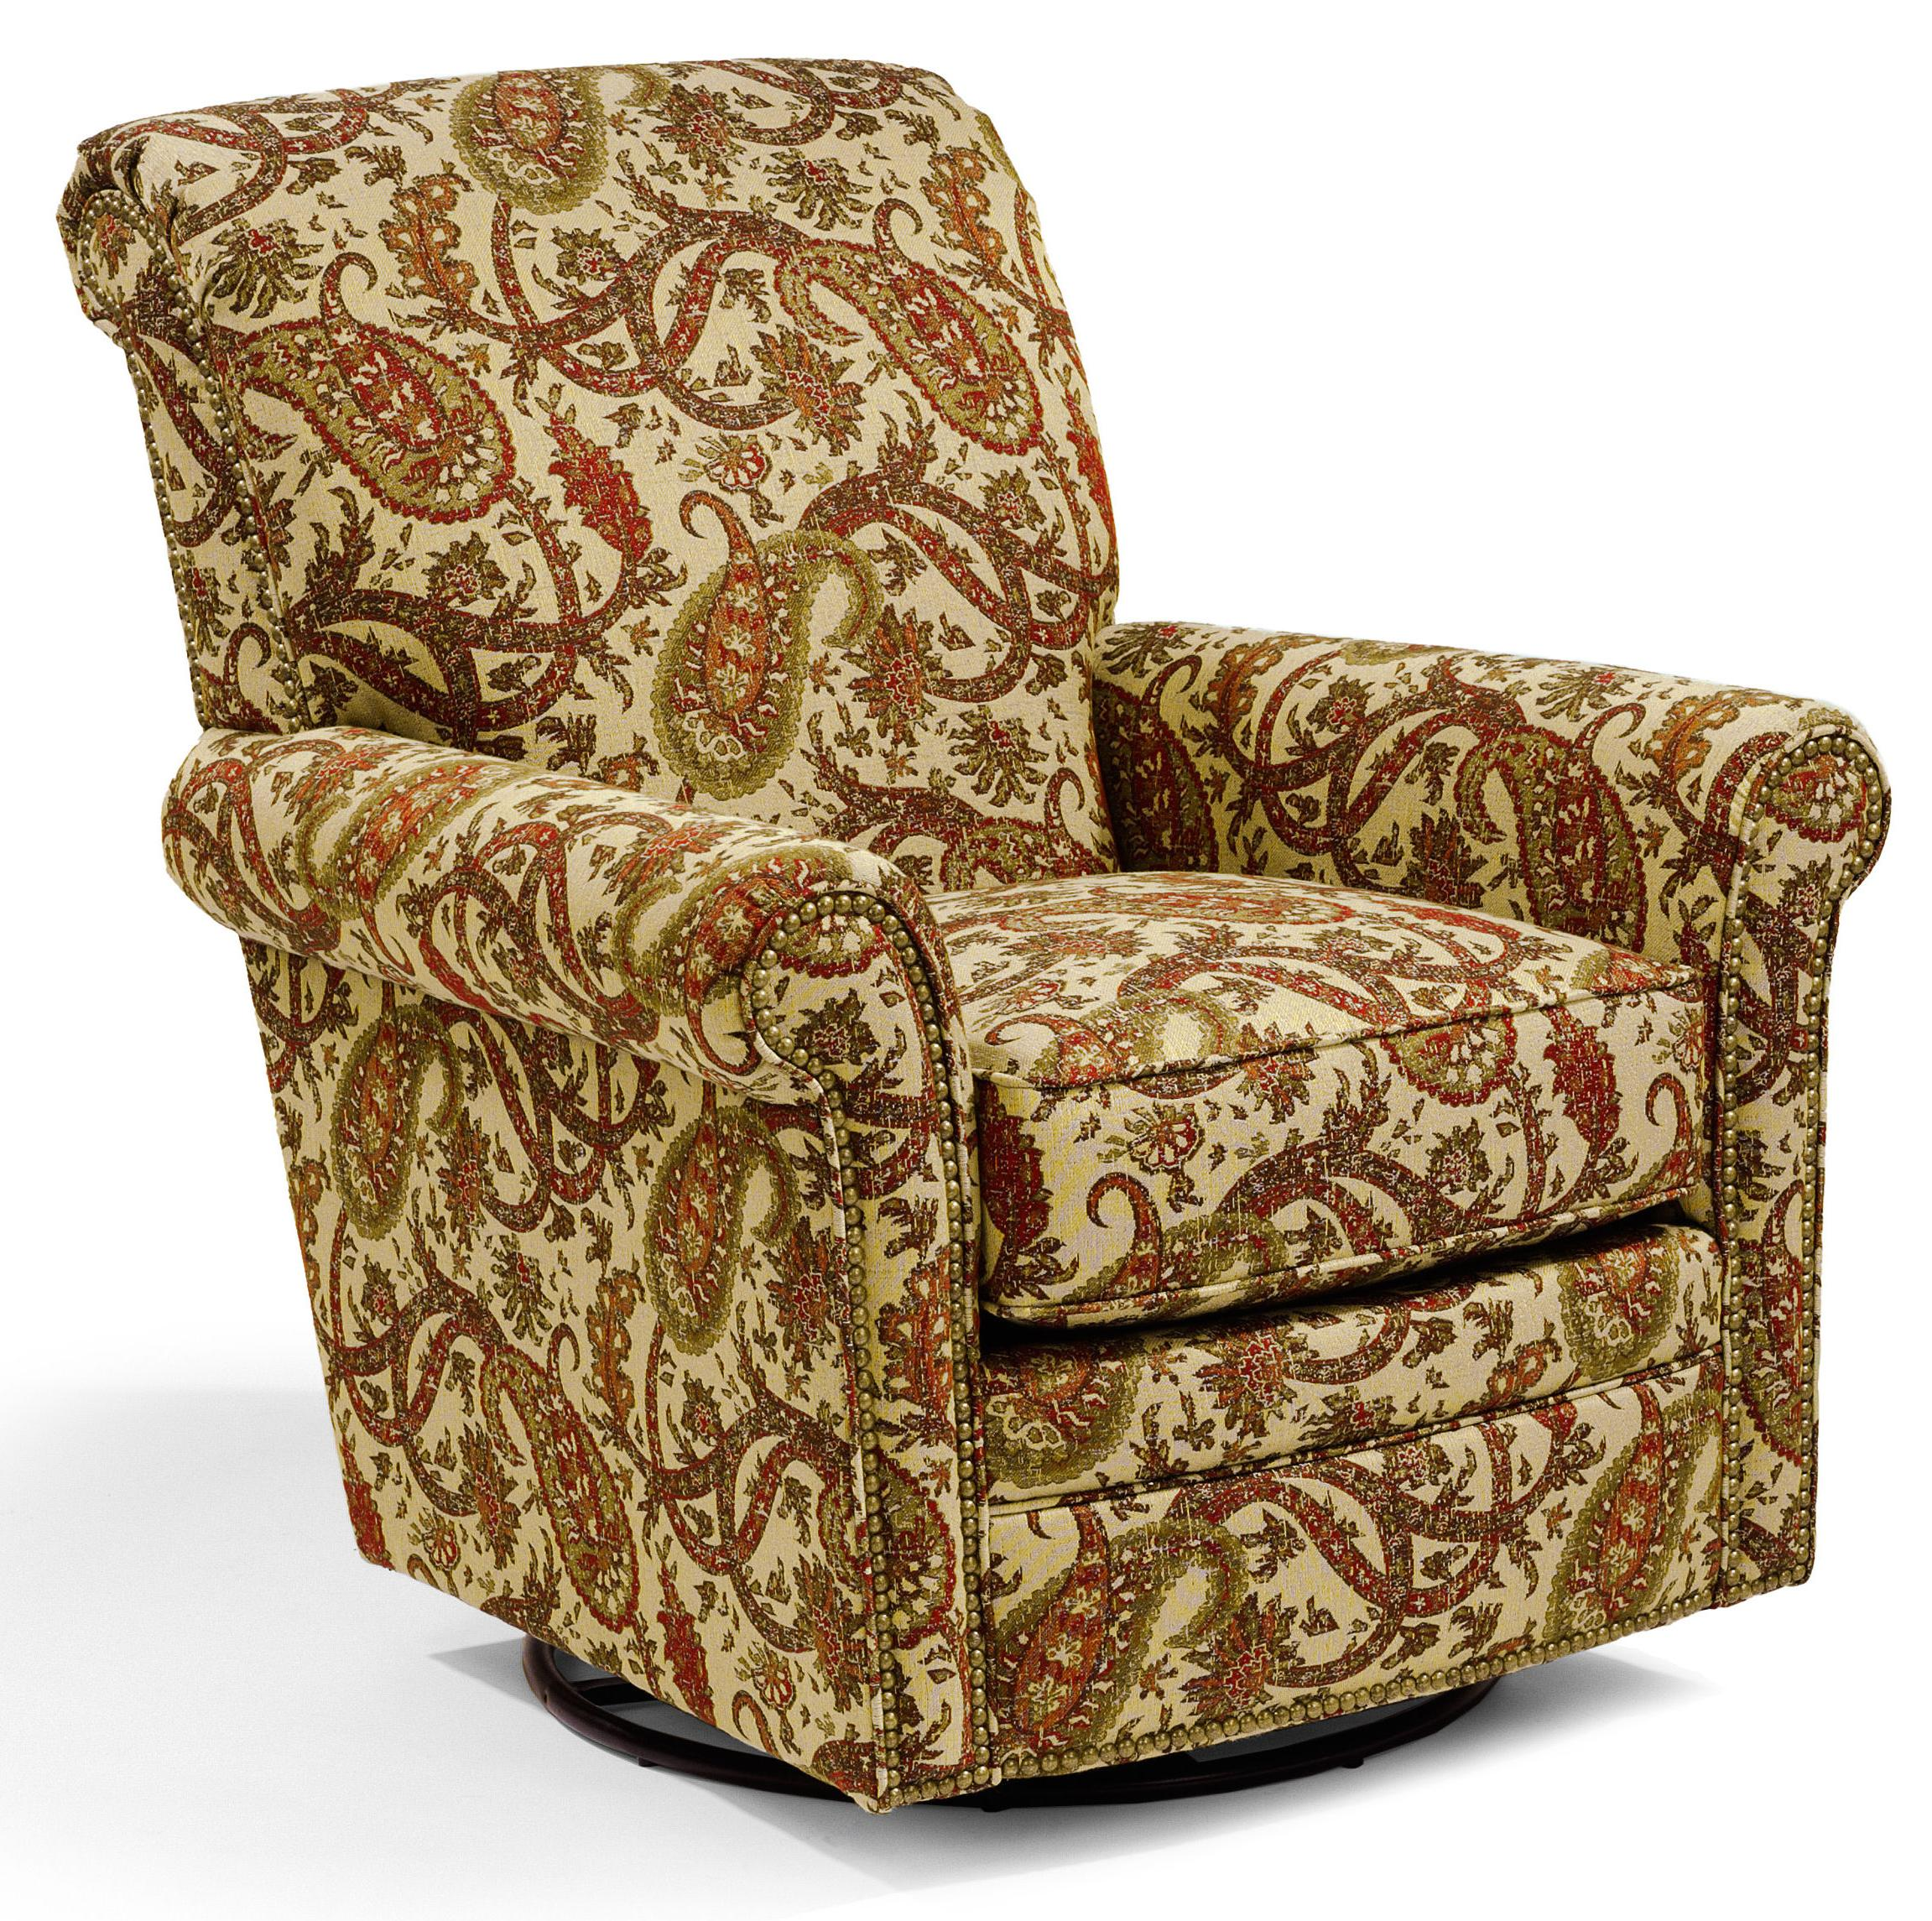 Accents Plaza Swivel Glider by Flexsteel at Furniture Superstore - Rochester, MN